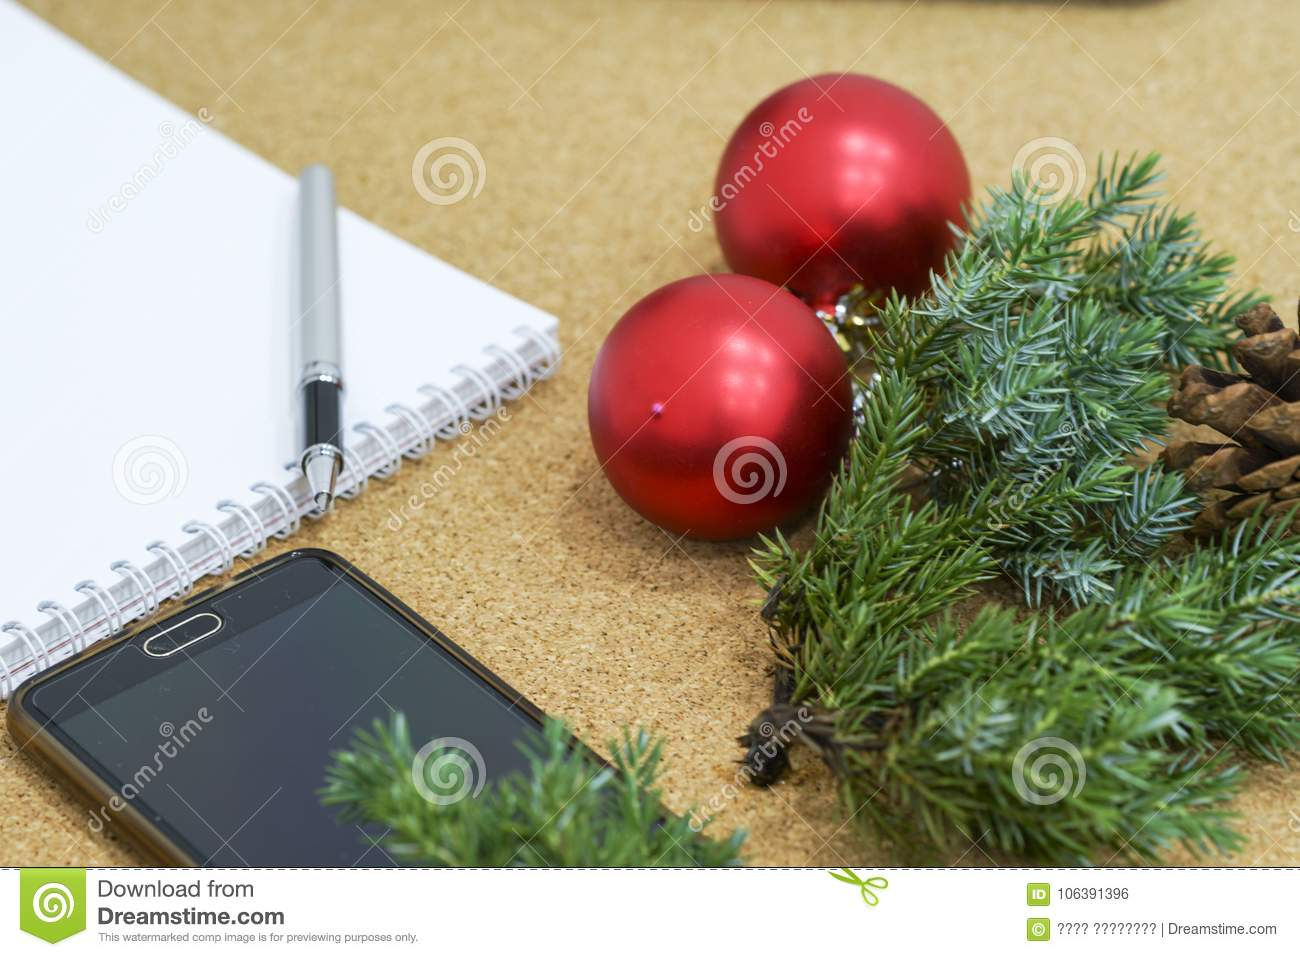 download not completed list of goals in a notebook on a wooden table with christmas decorations